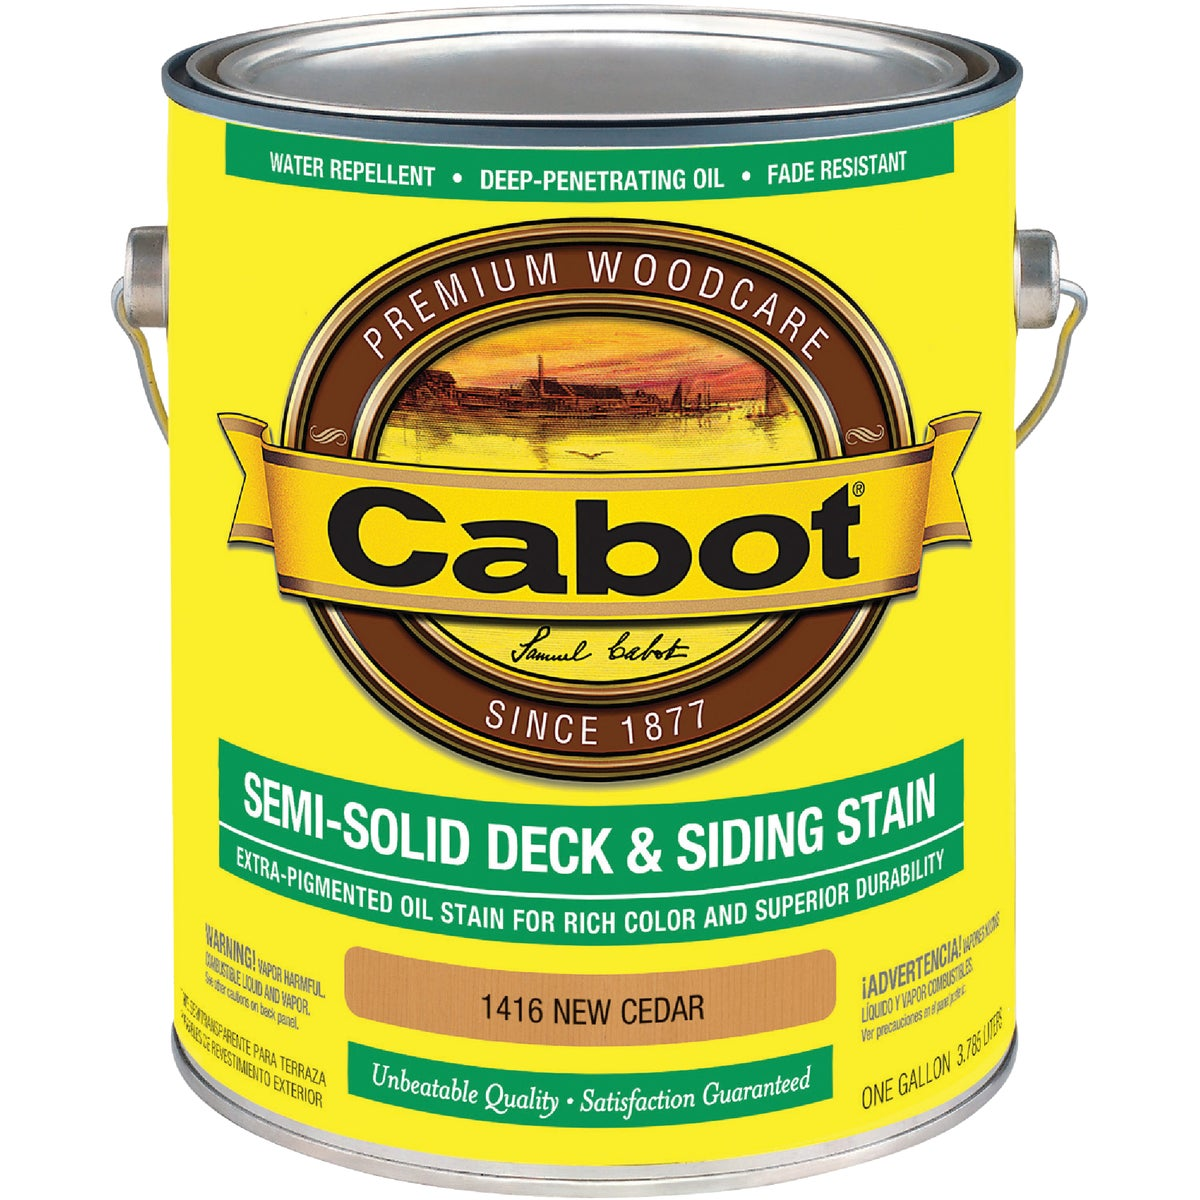 NEW CEDAR S/S DECK STAIN - 140.0001416.007 by Valspar Corp